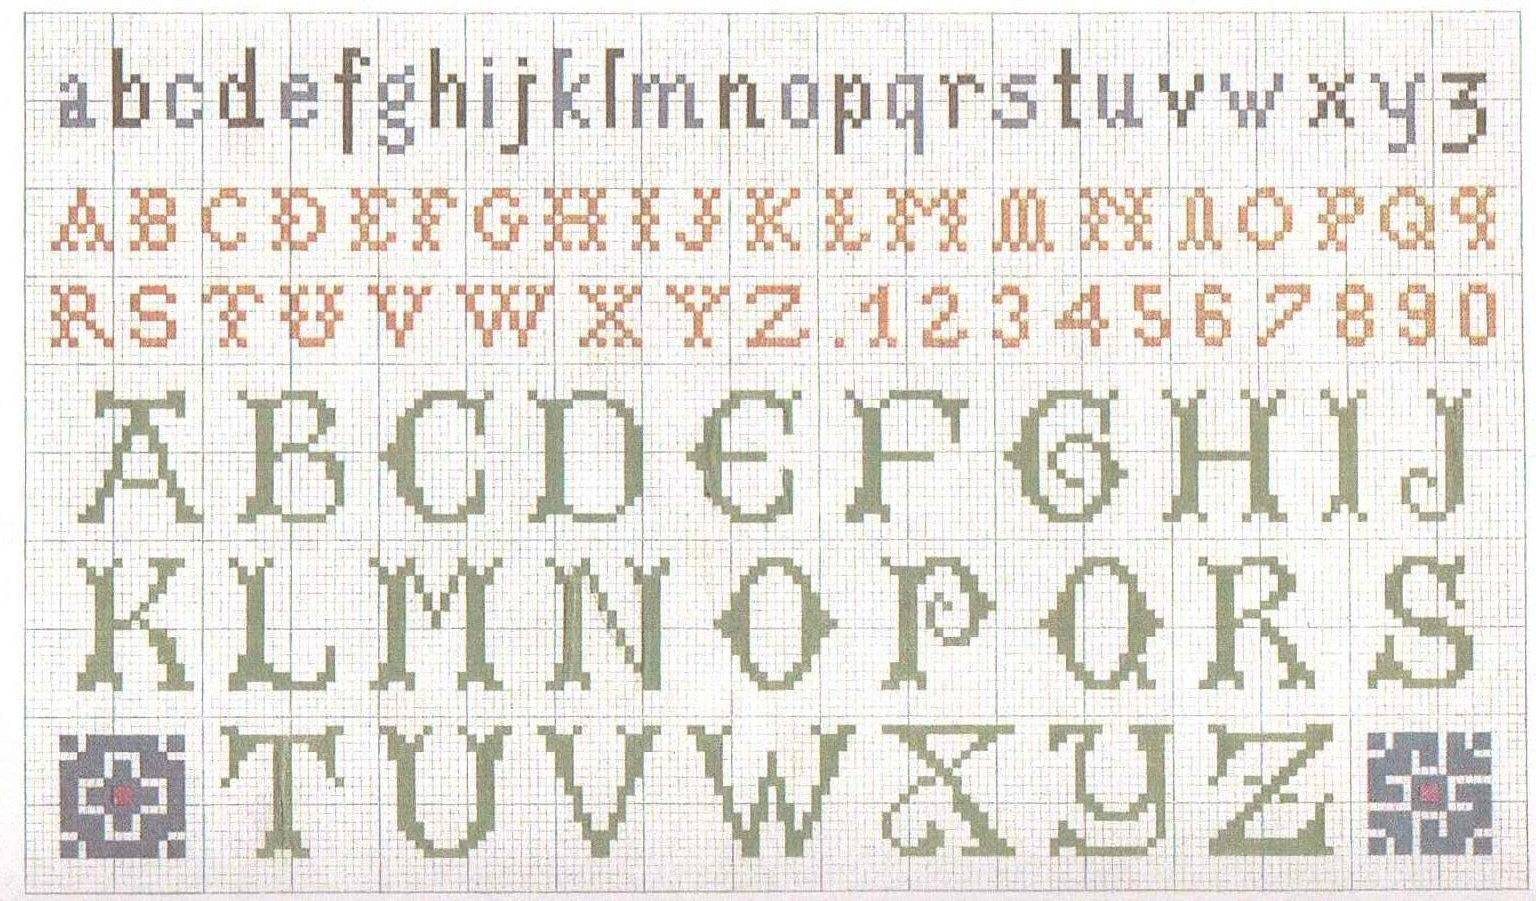 Knitting Patterns For Letters Of The Alphabet : 1000+ images about Alphabets on Pinterest